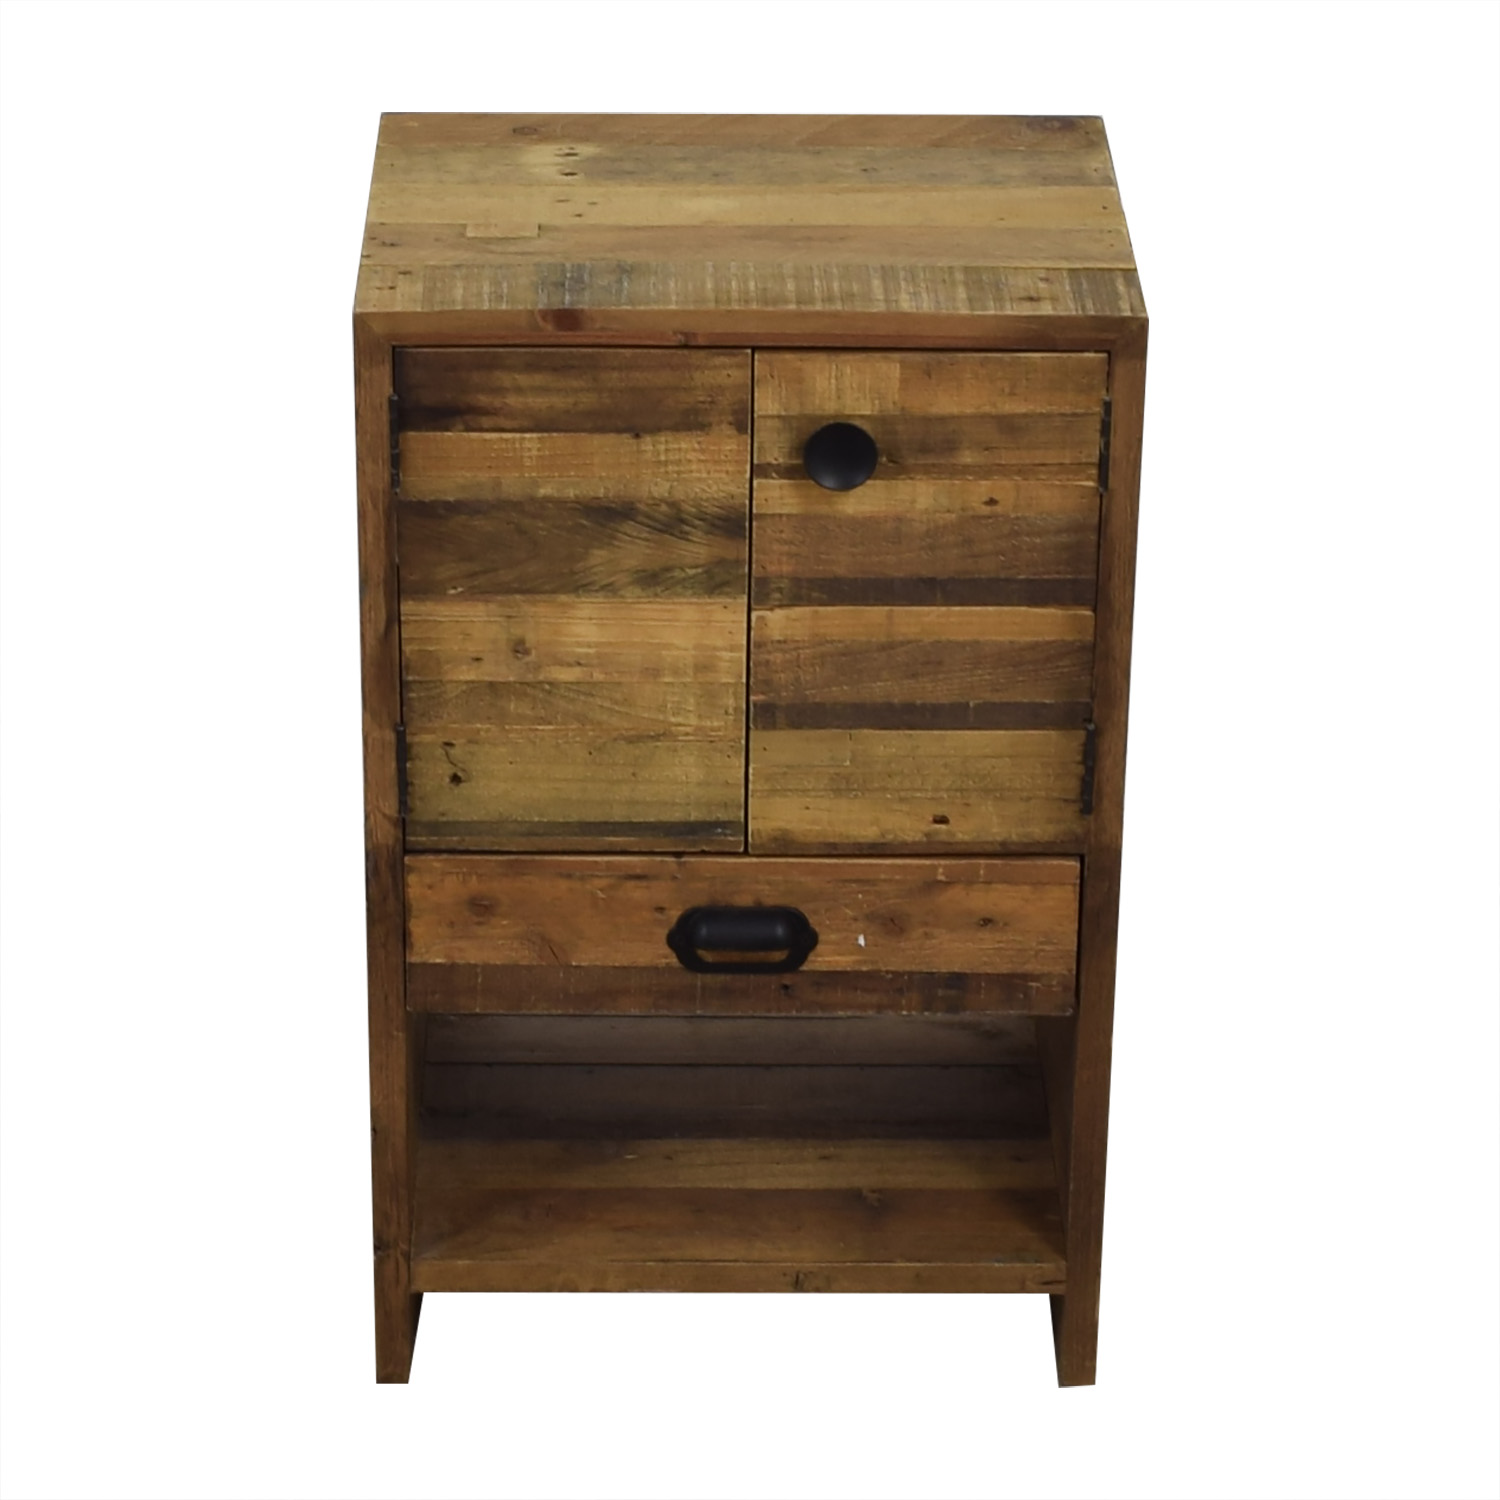 West Elm West Elm Rustic Wood Single Drawer Night Stand for sale